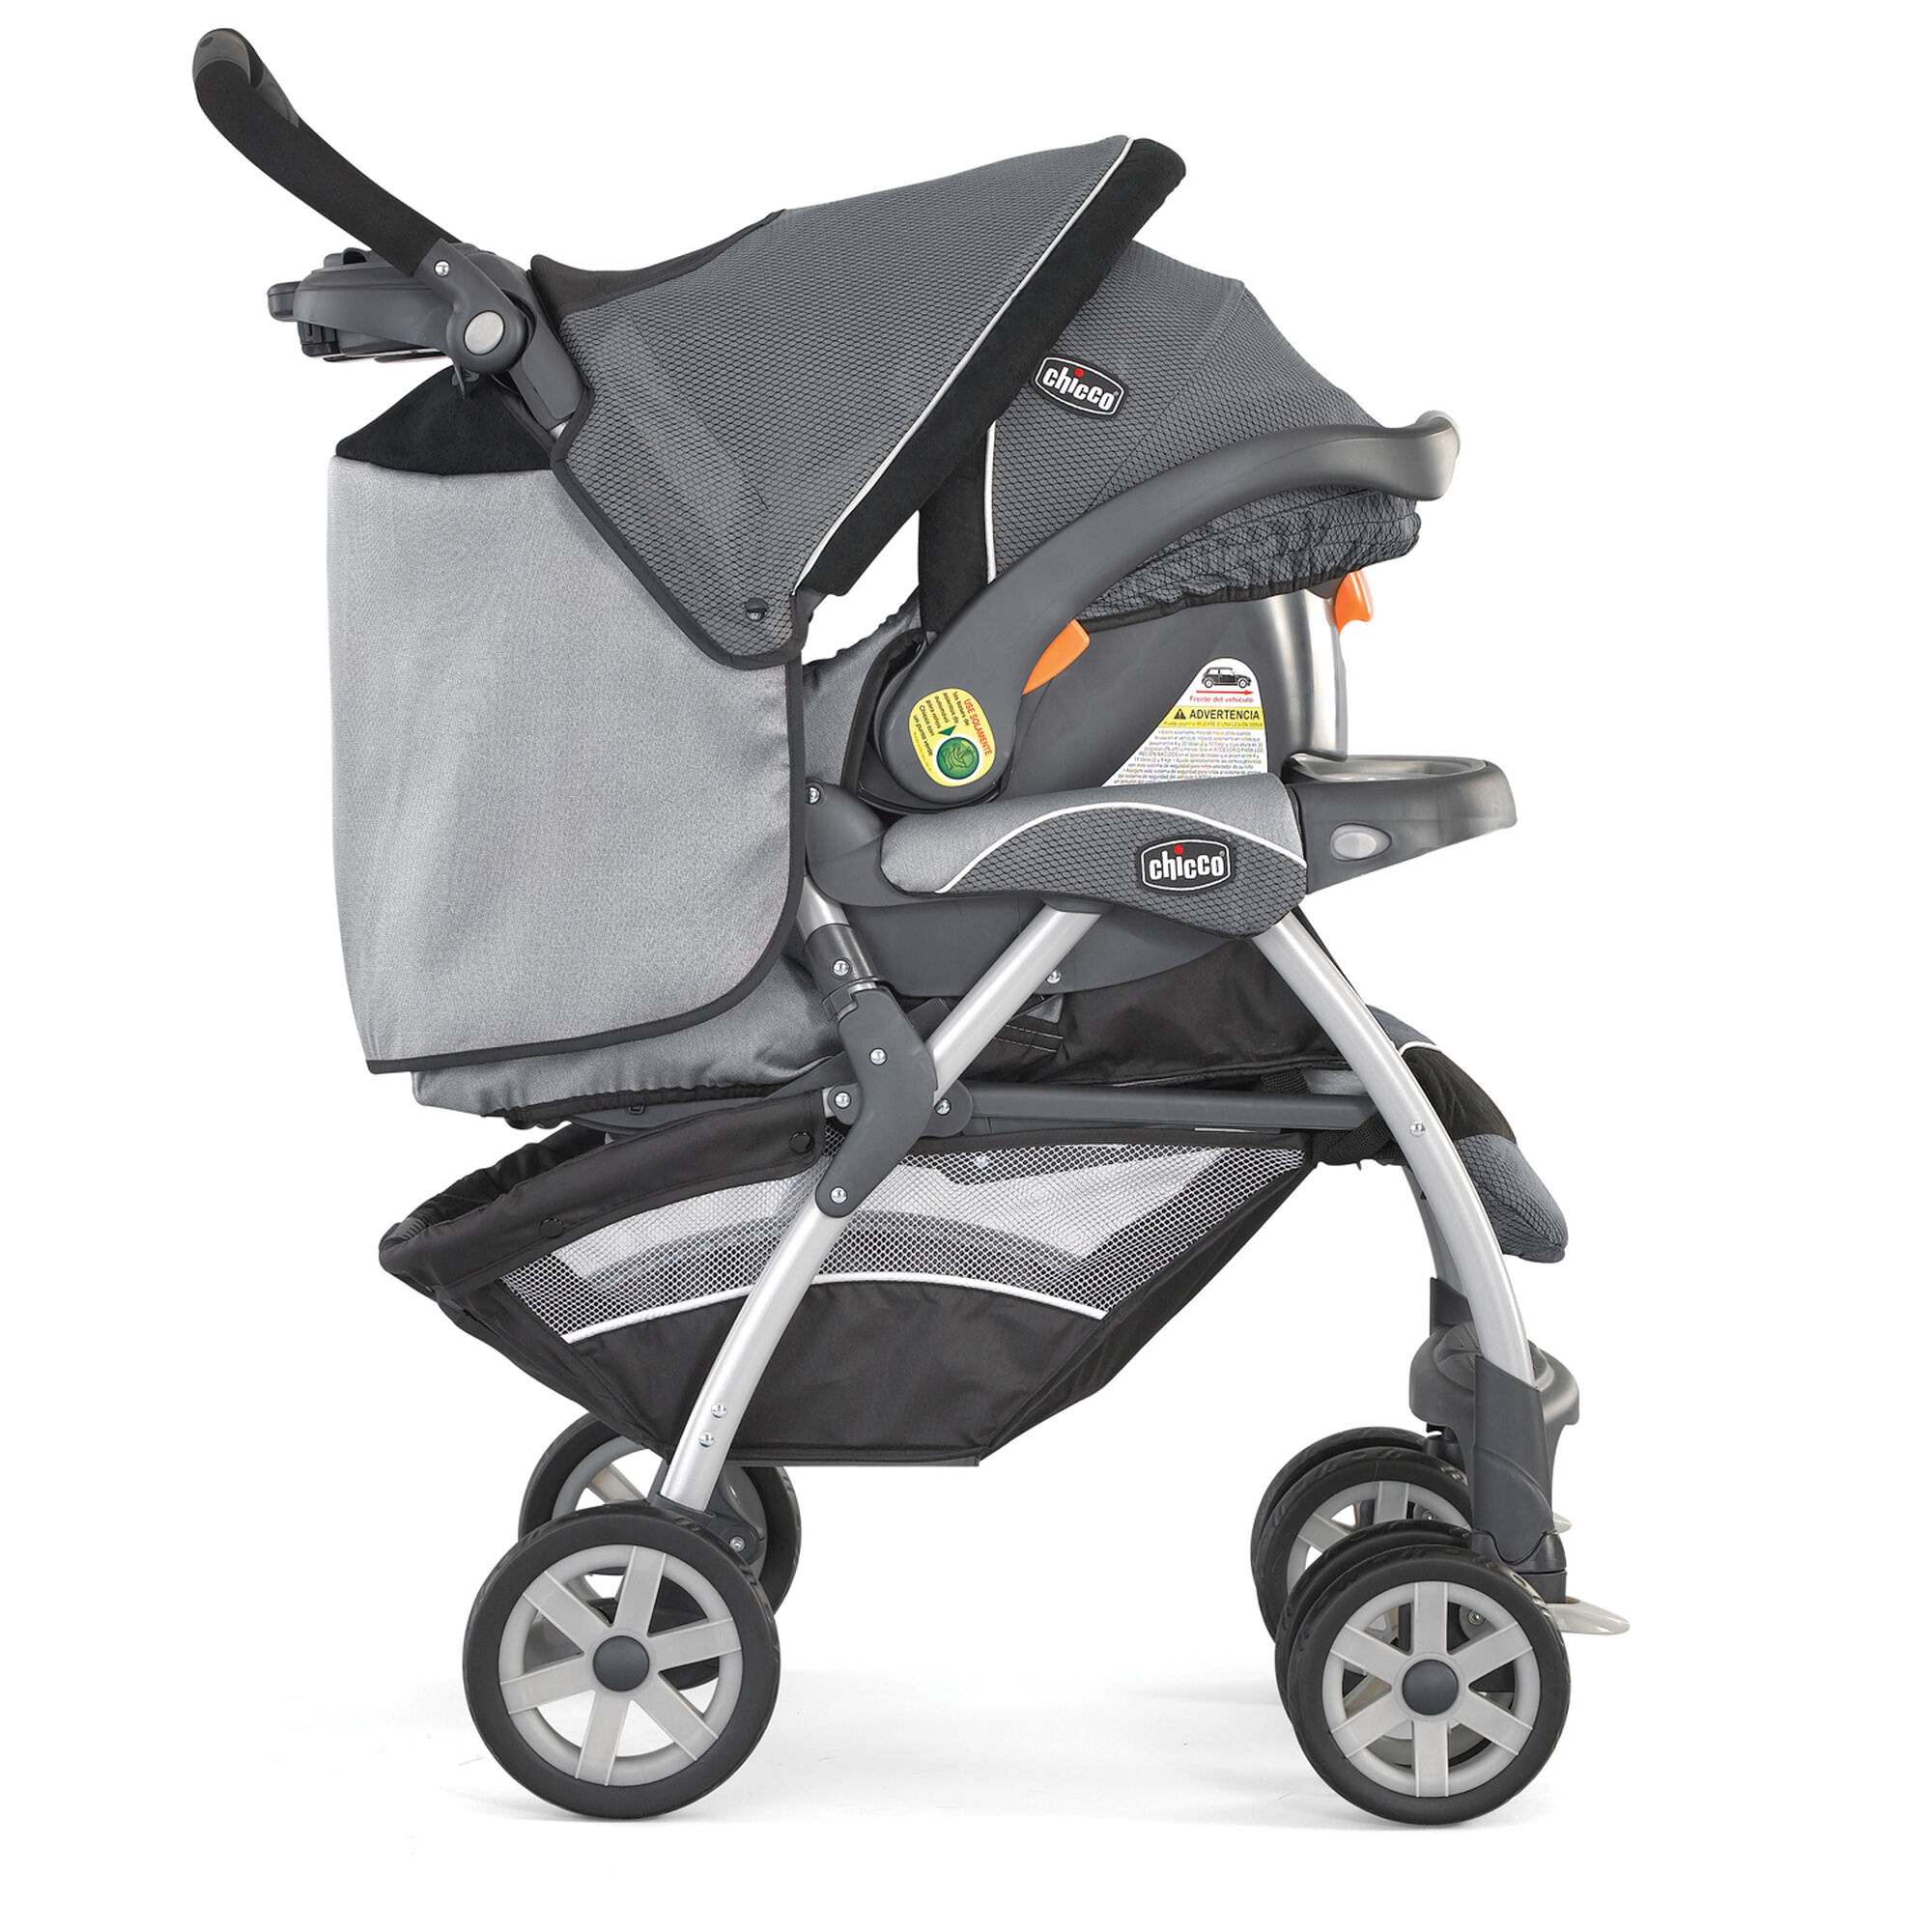 Chicco Cortina KeyFit 30 Travel System Graphica stroller and KeyFit 30 Infant Car Seat bined